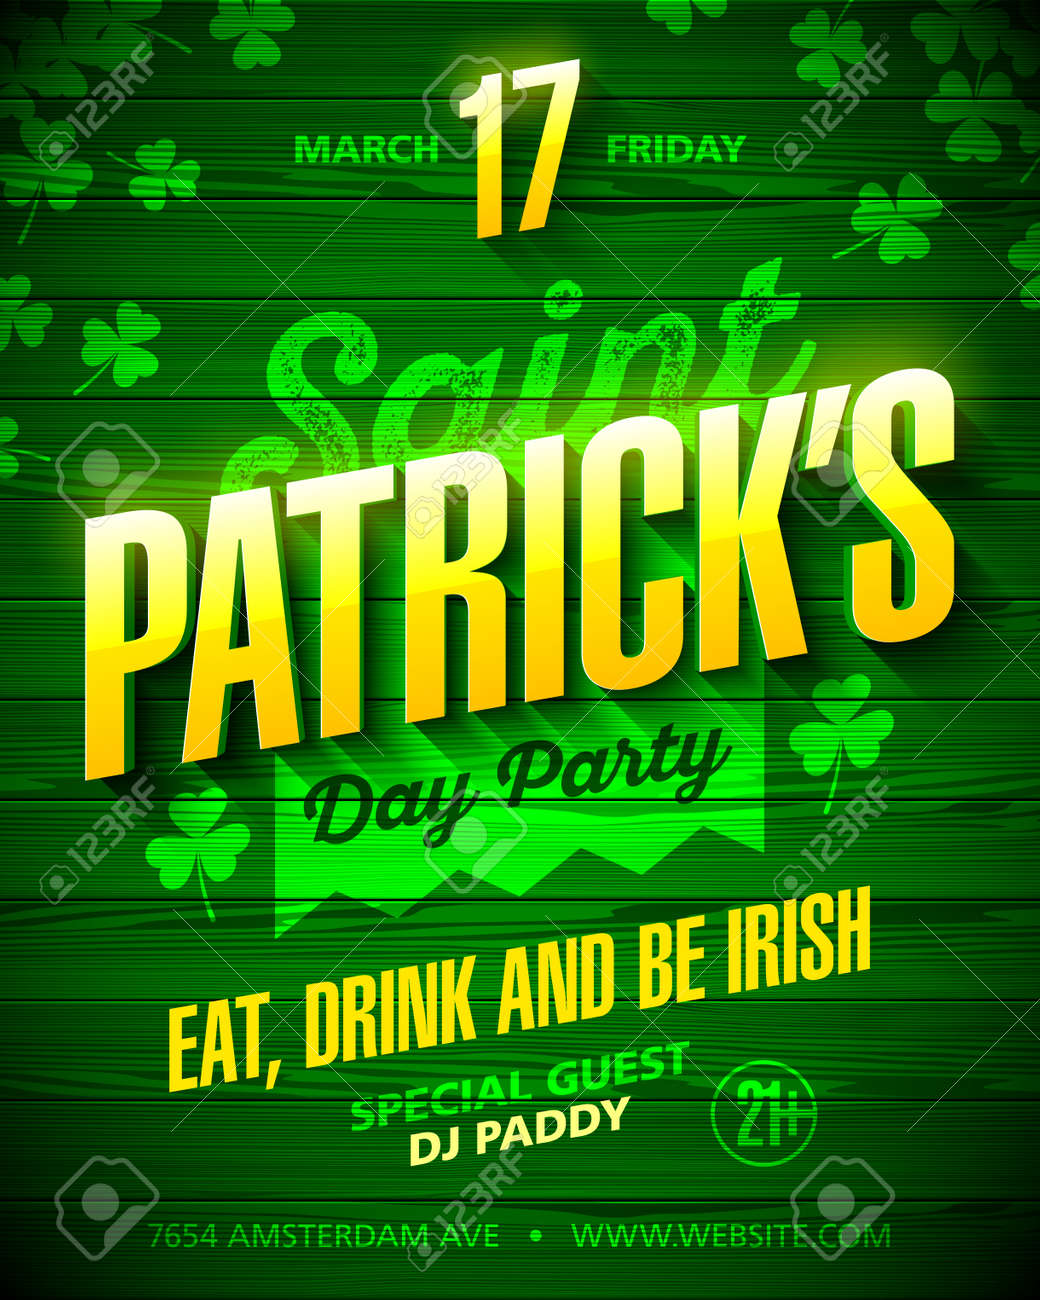 Saint Patrick\'s Day Party Poster Design. Eat, Drink And Be Irish ...